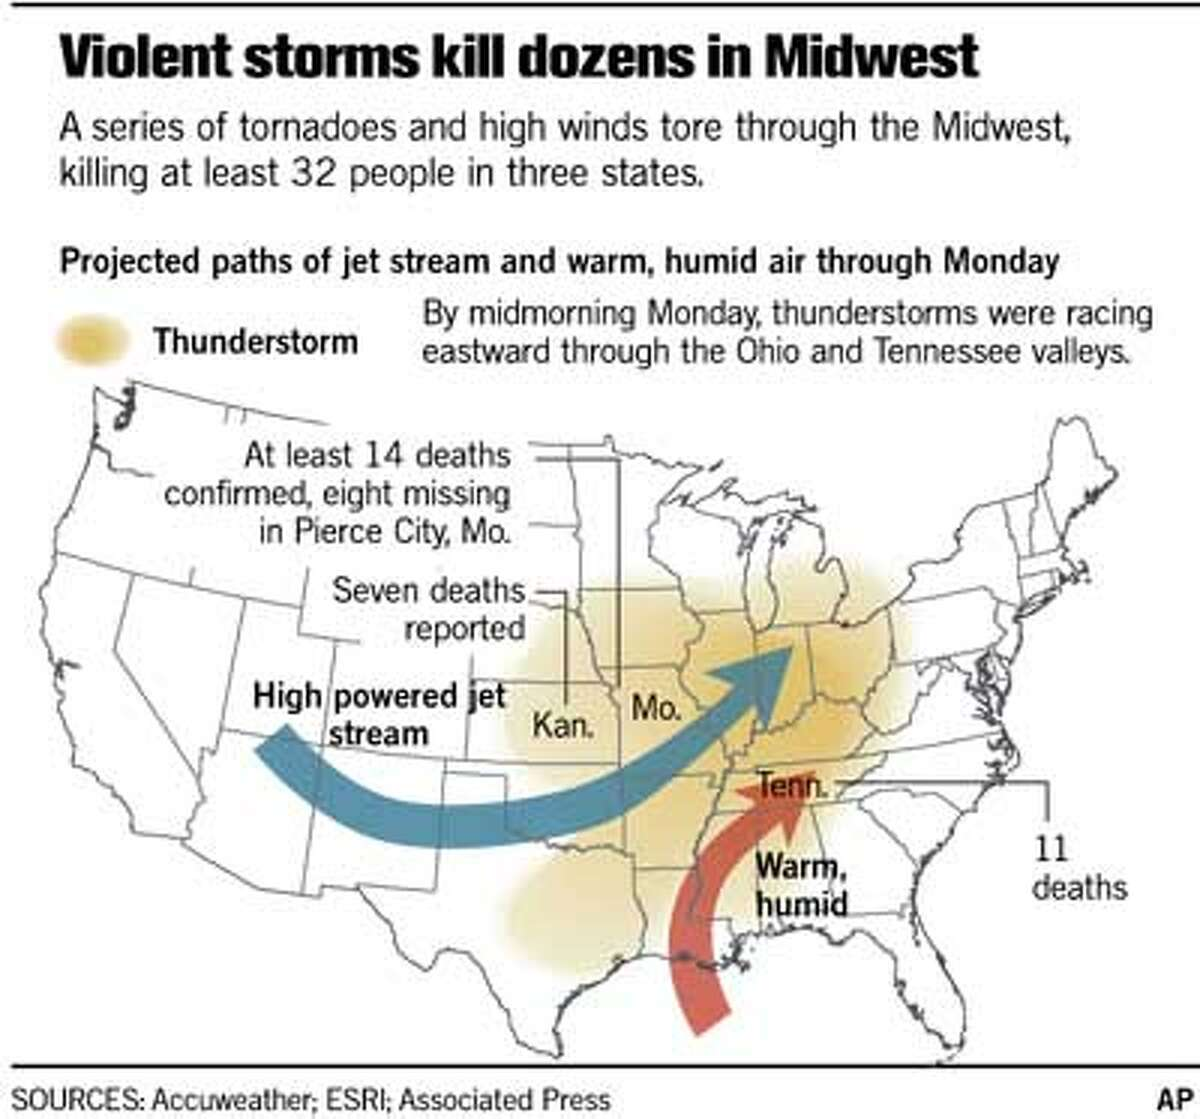 Violent Storms Kill Dozens in Midwest. Associated Press Graphic